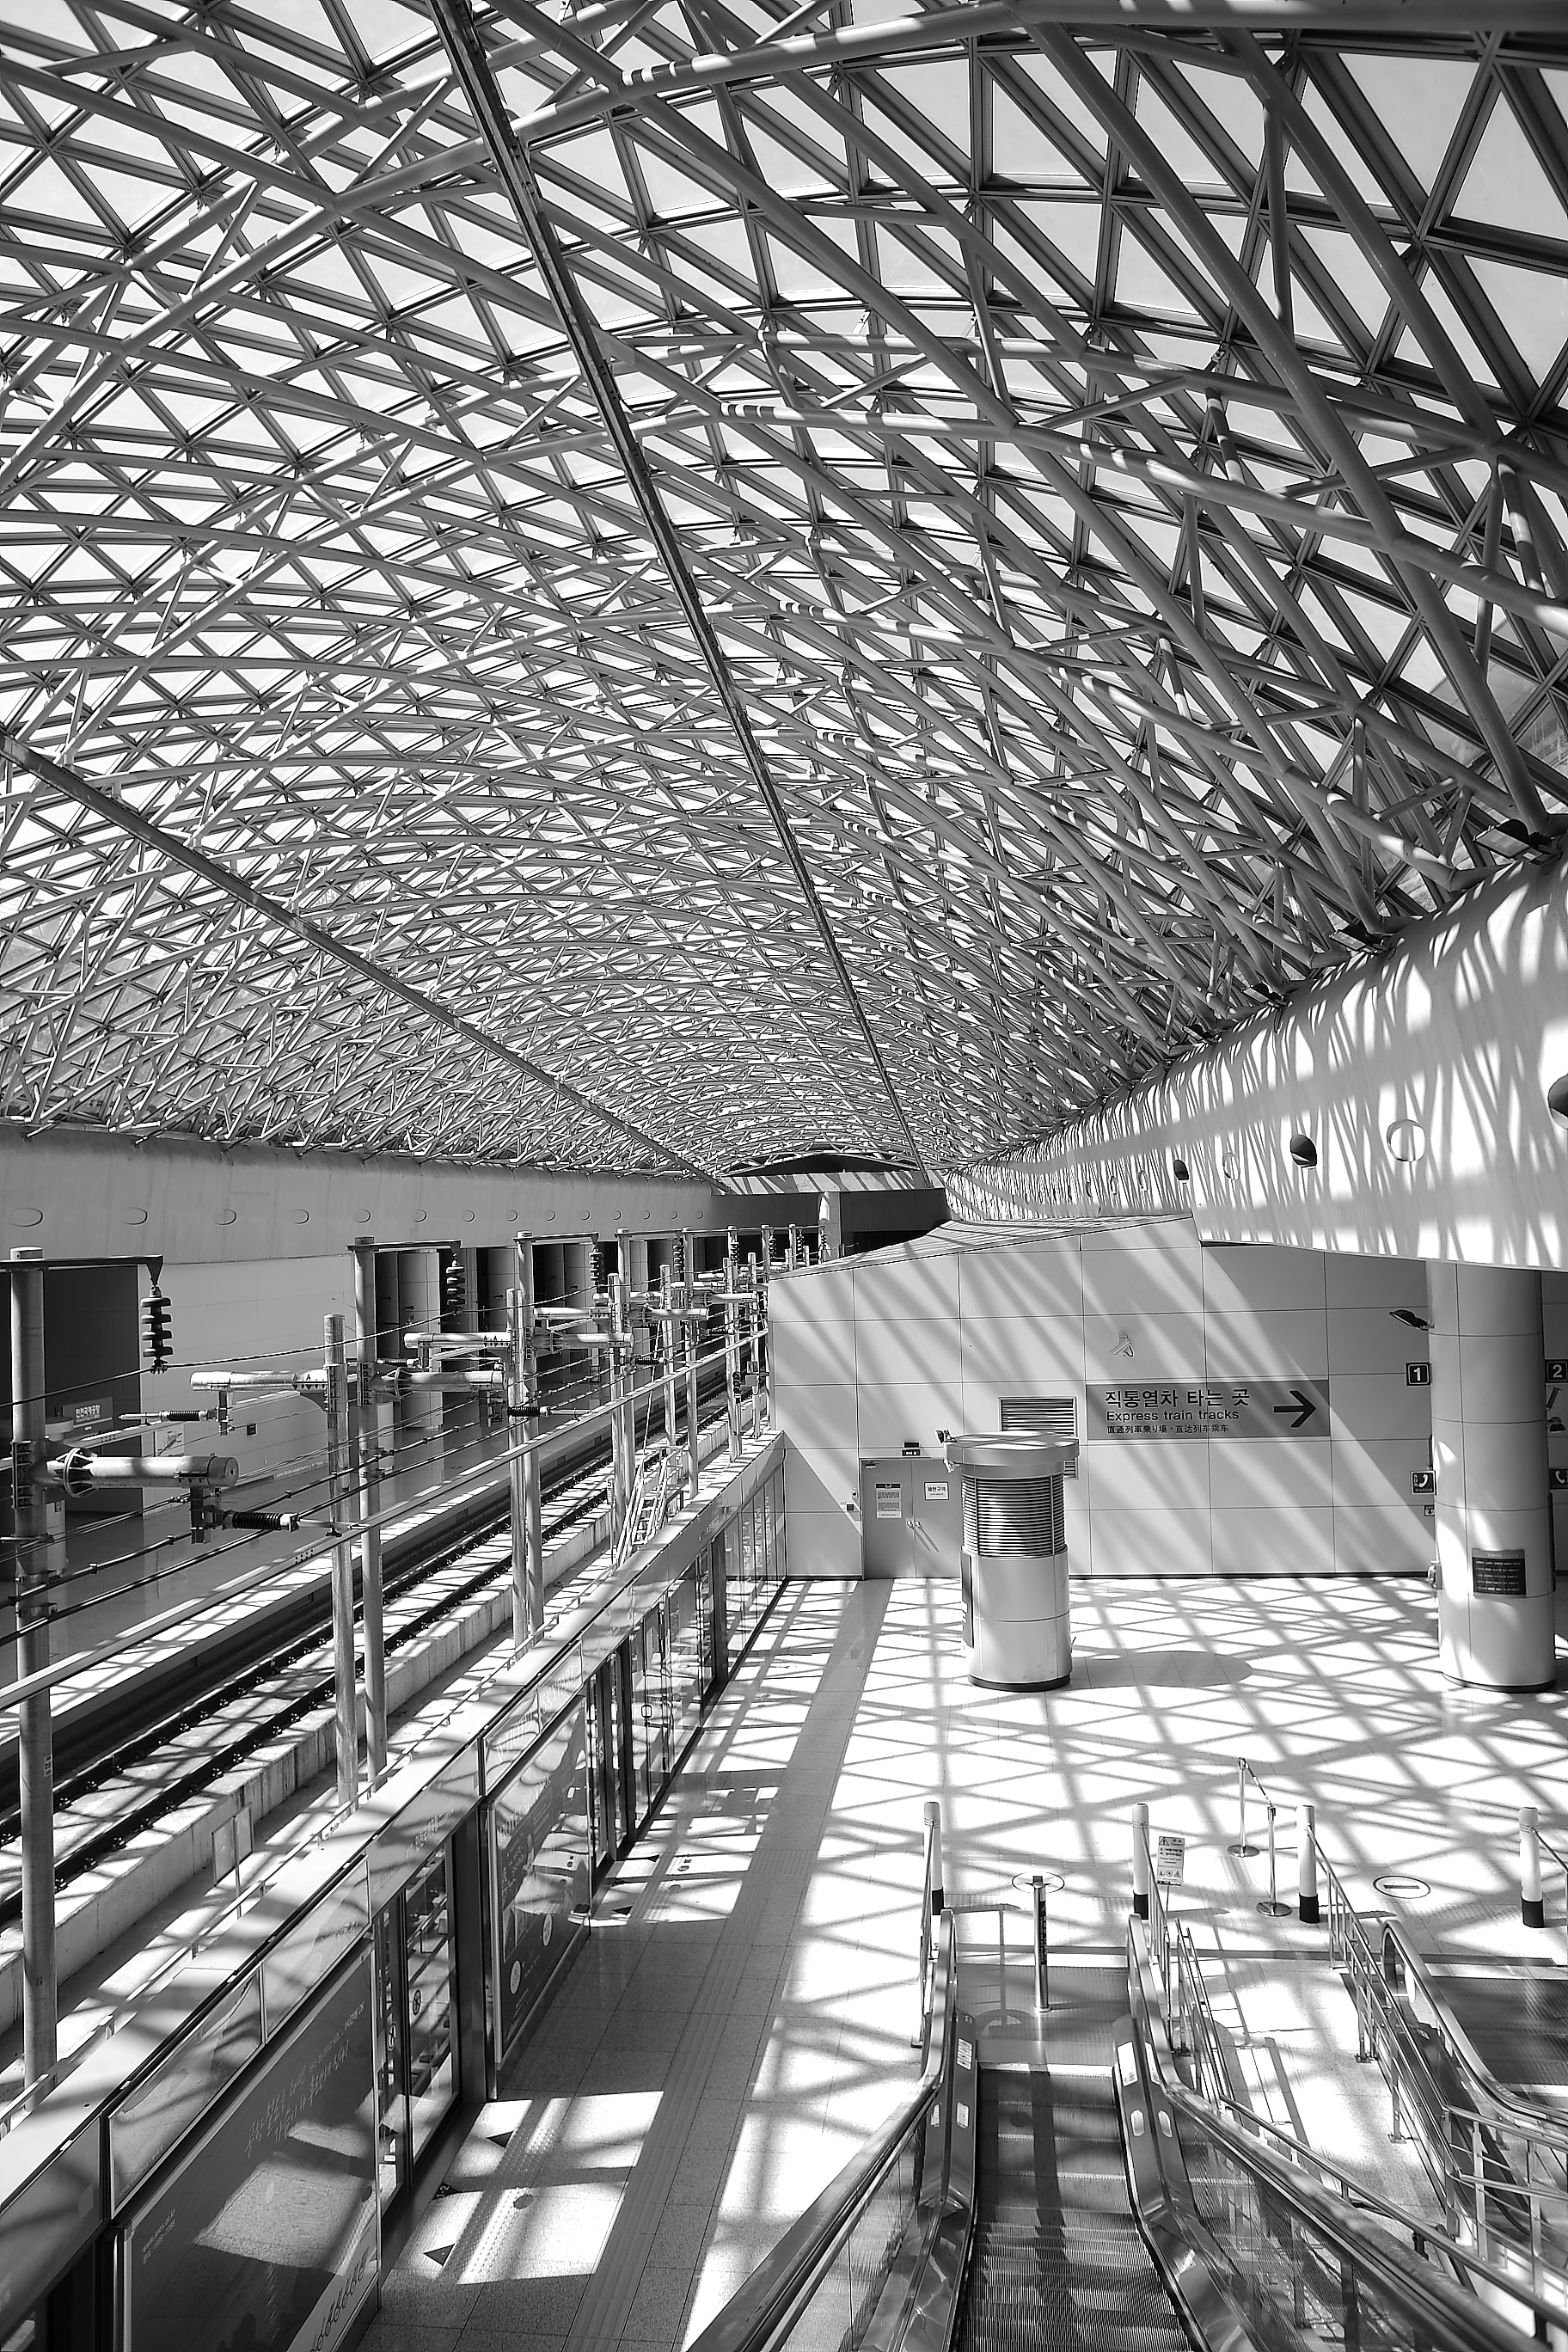 Grey Steel Frame Building Ceiling in Black and White Photograph ...